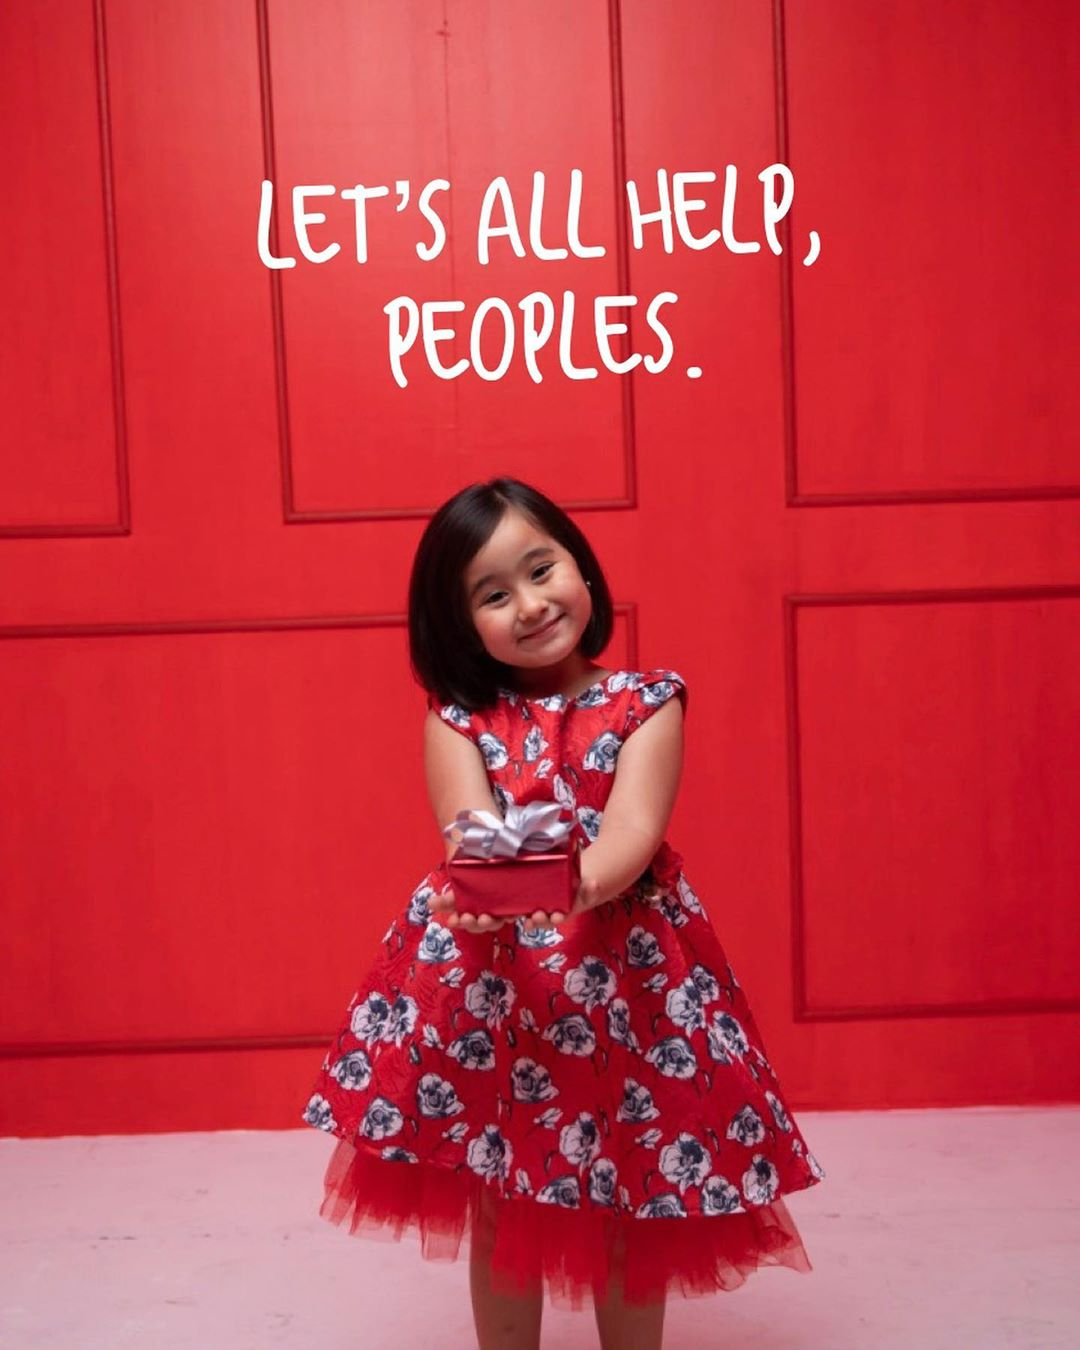 Scarlet Snow Belo raises funds